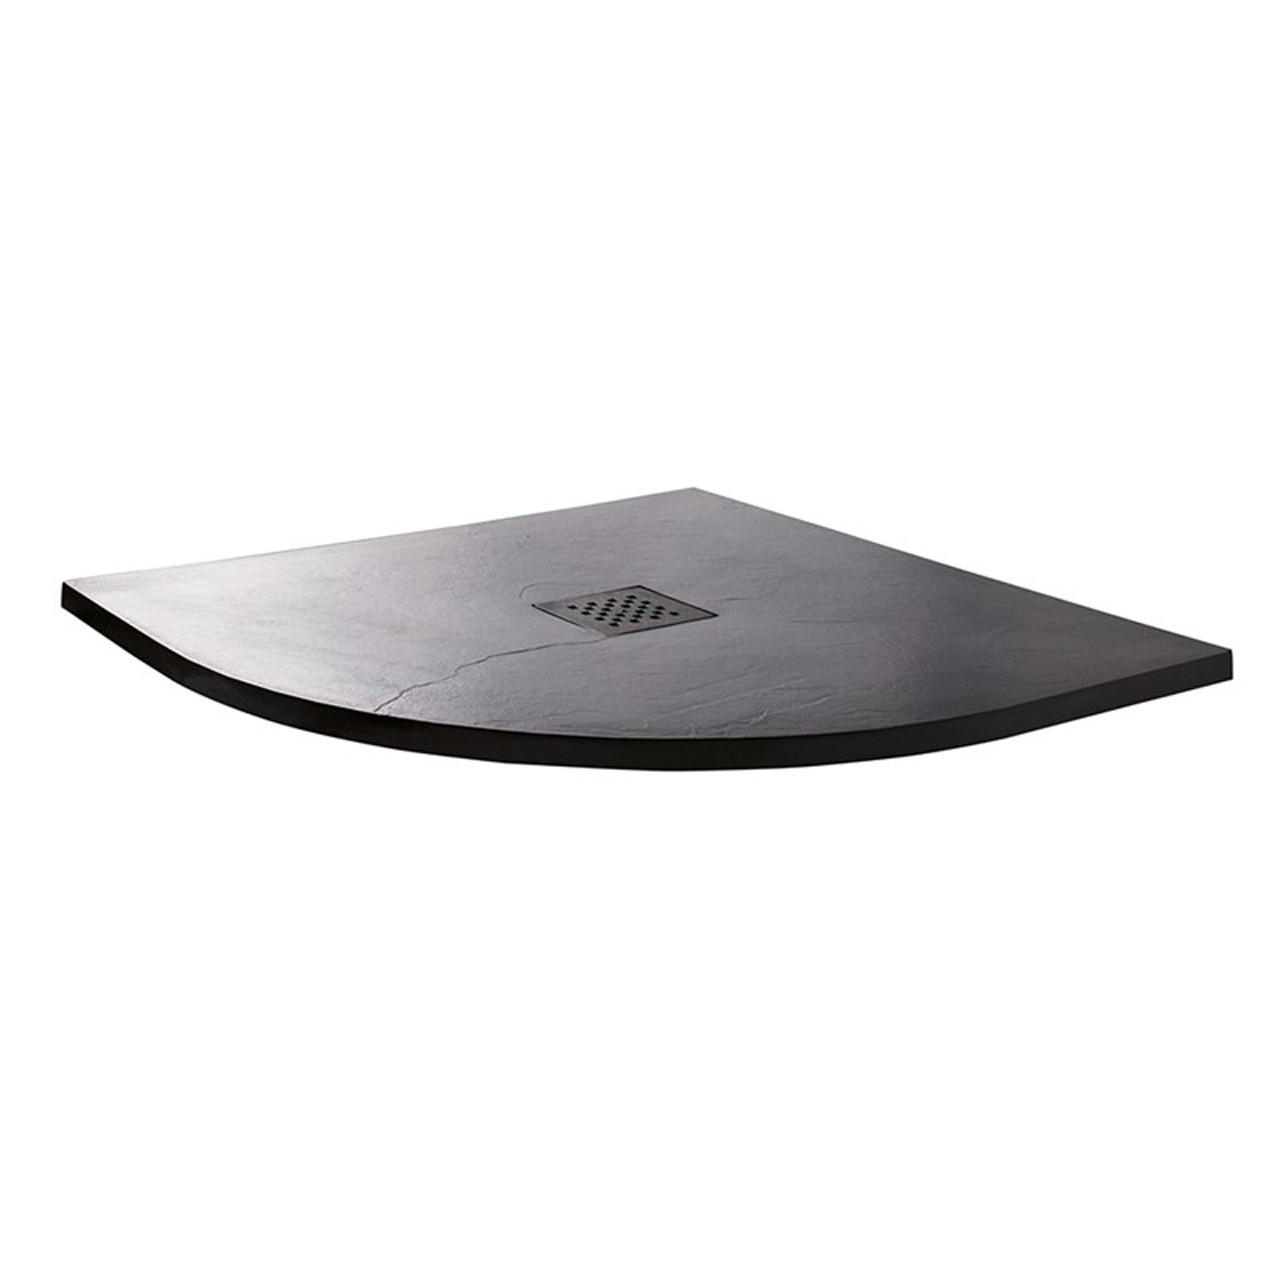 Wholestone Slate 900mm x 900mm Anthracite Quadrant Shower Tray